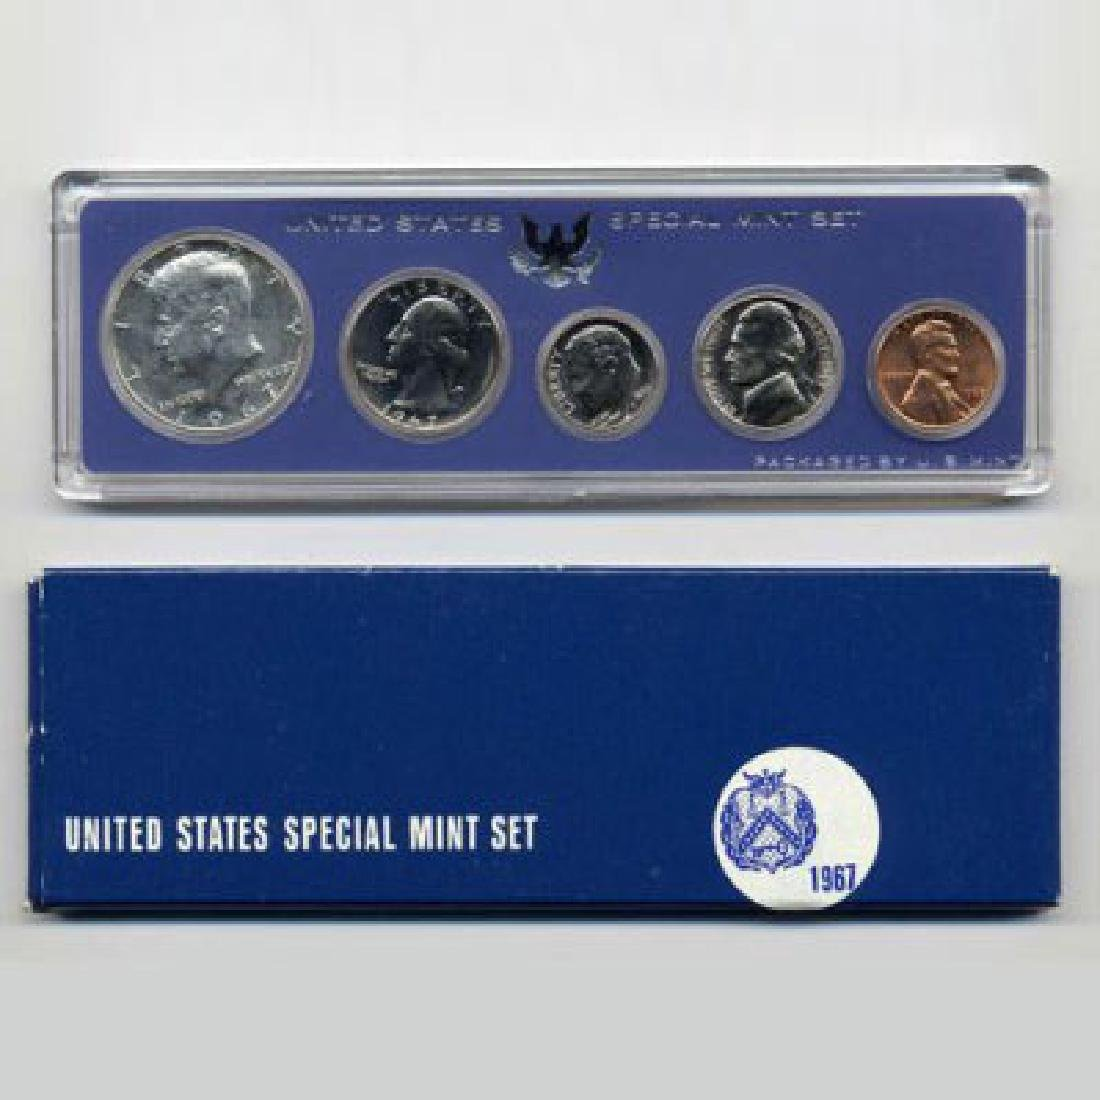 1967 US Coin Special Mint Set GEM Potential